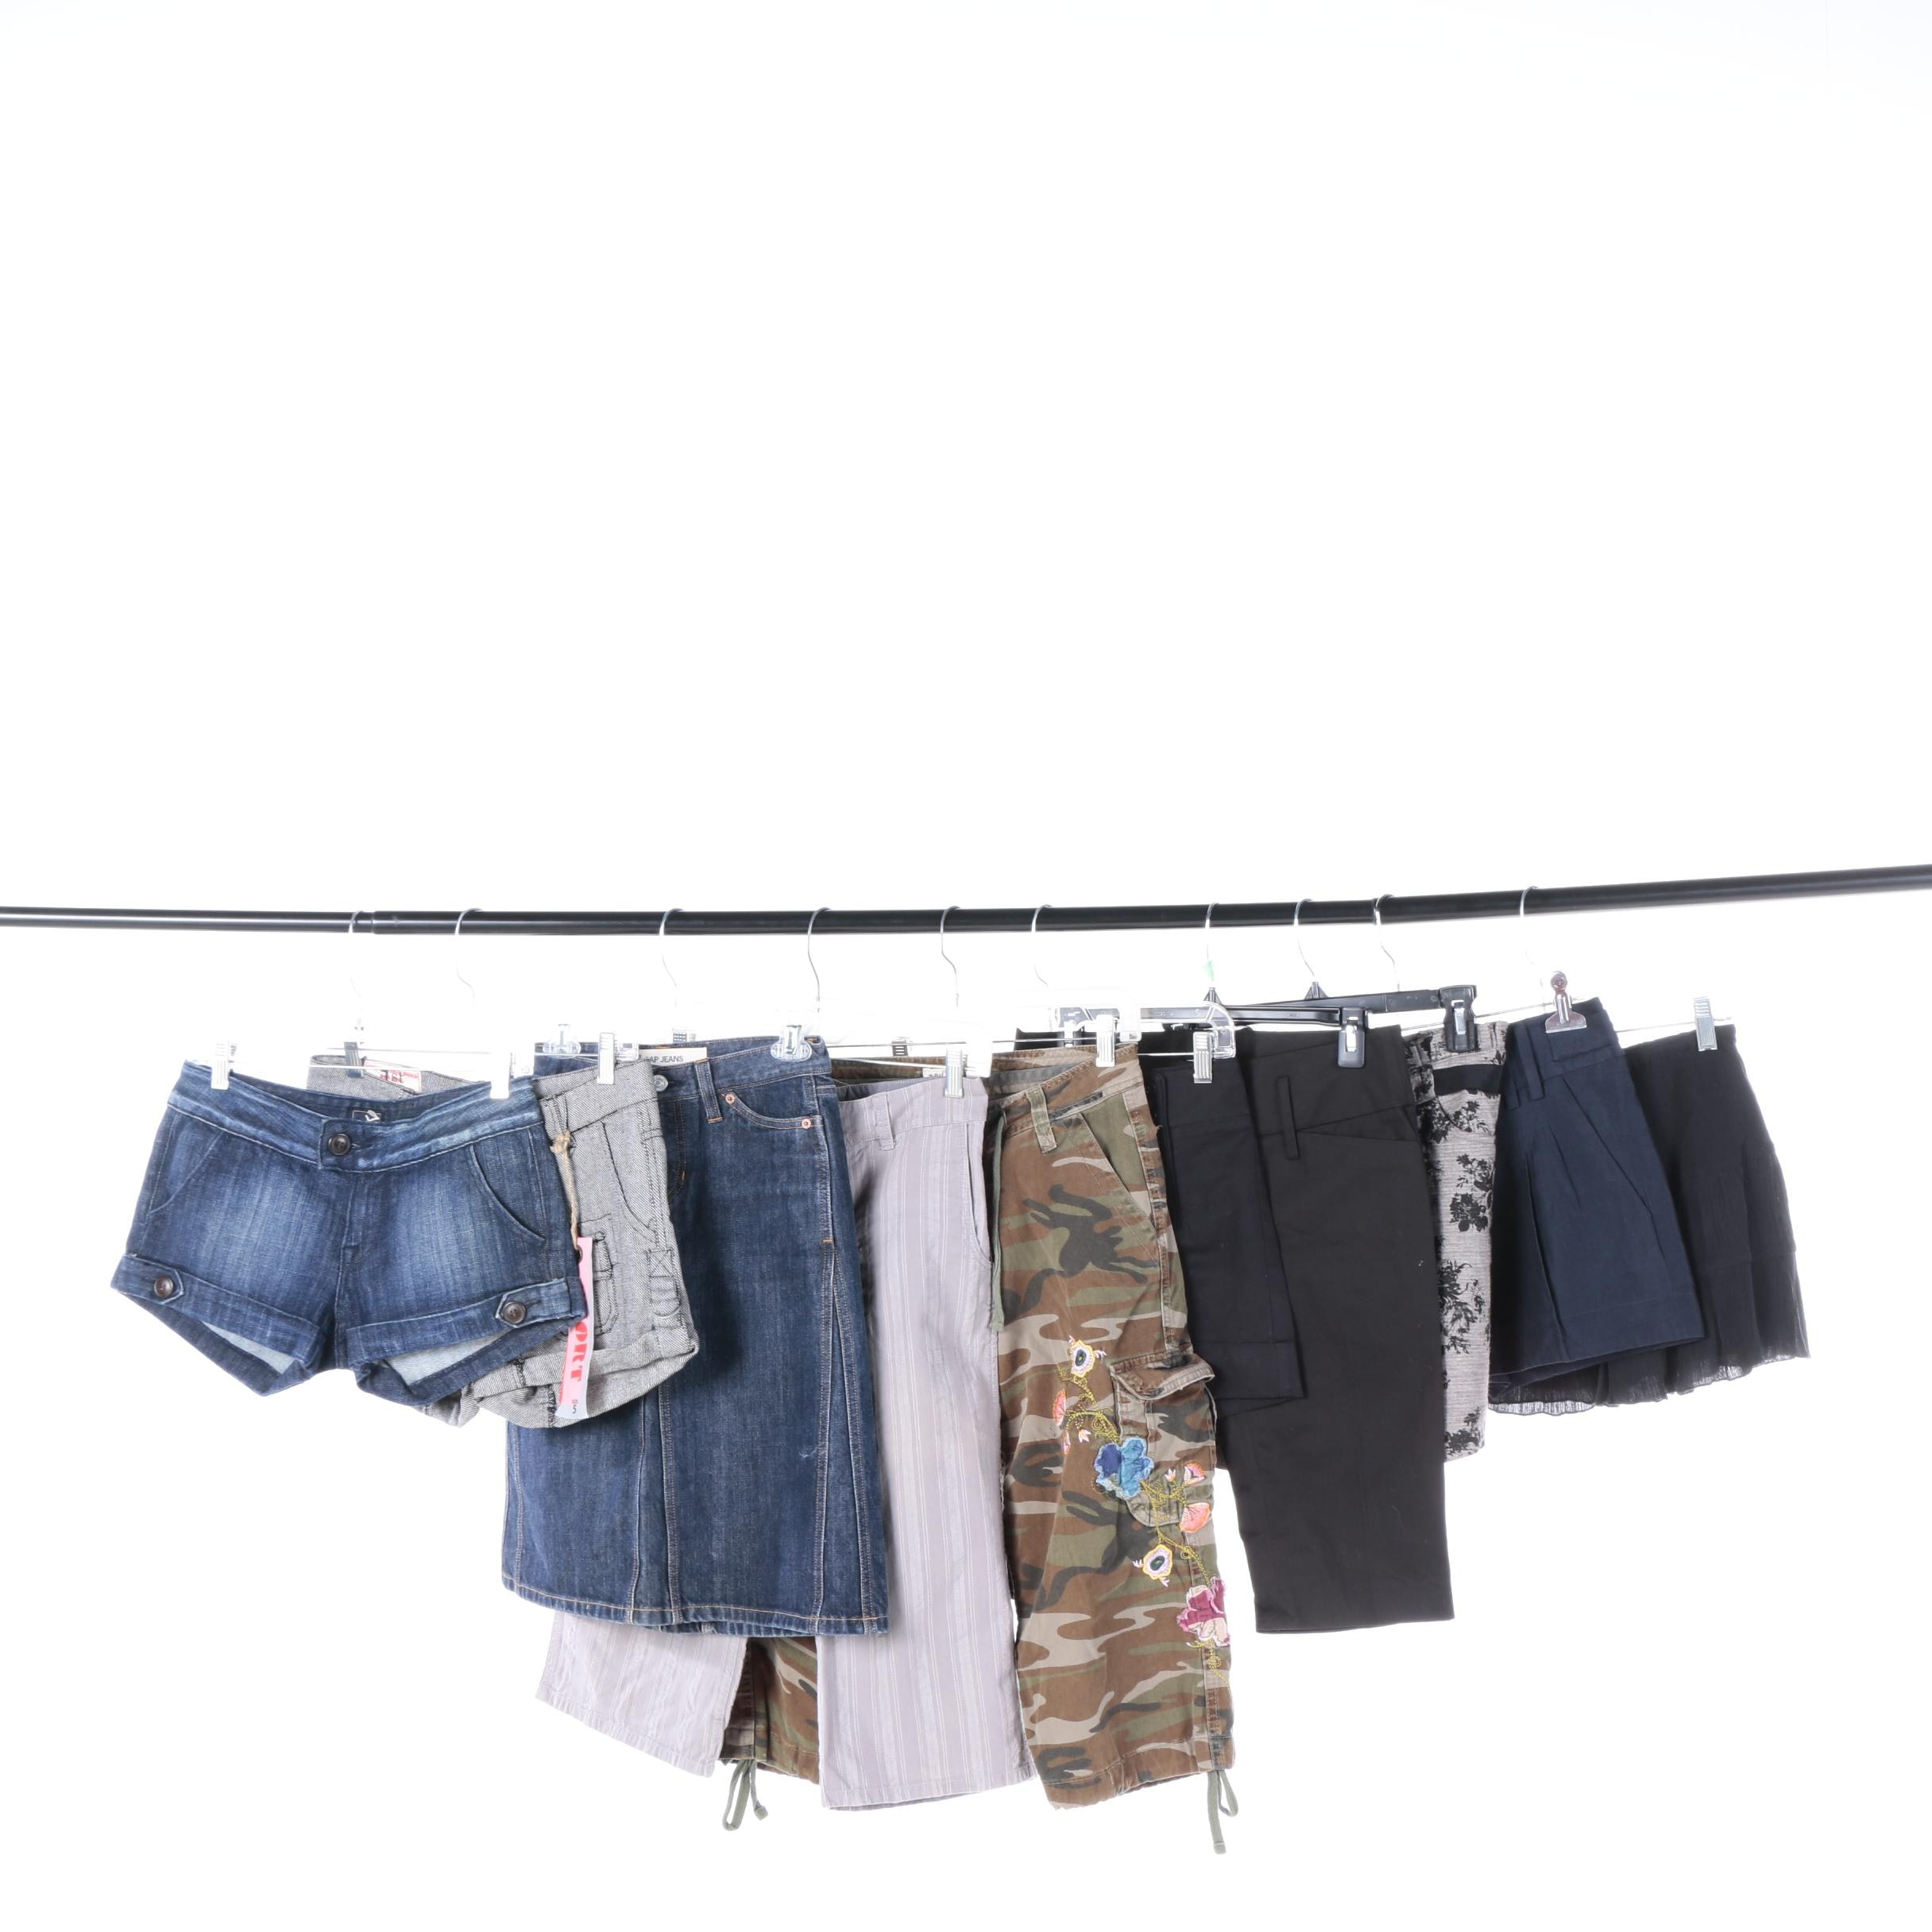 Women's Shorts, Capris and Skirts Including Free People and Old Navy